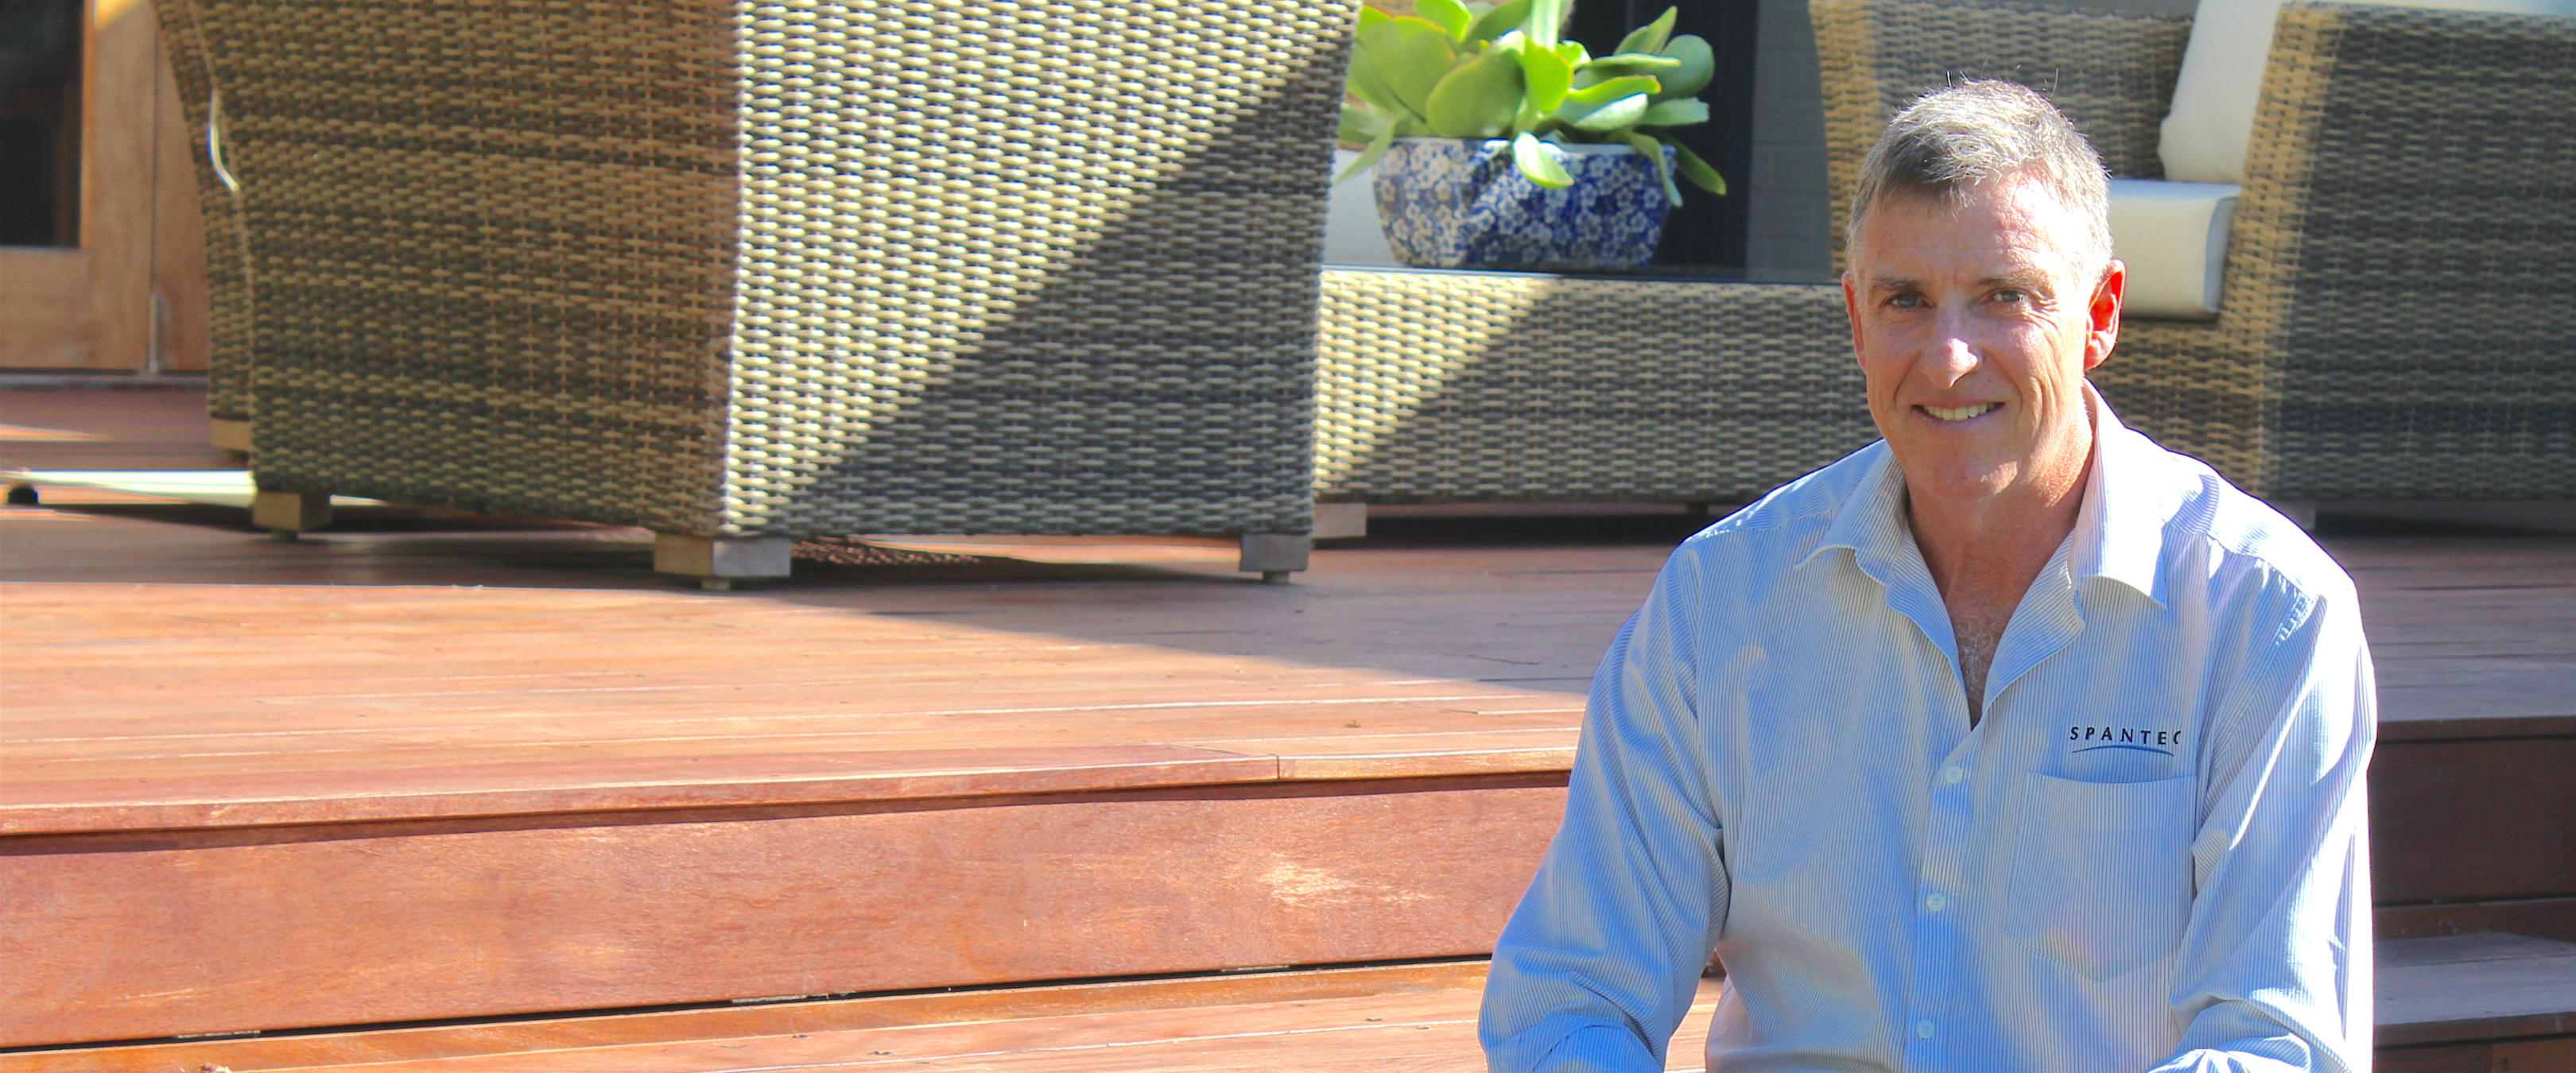 Spantec Director, Roy Beaumont smiling, witting on a deck constructed using Spantec deckframe.